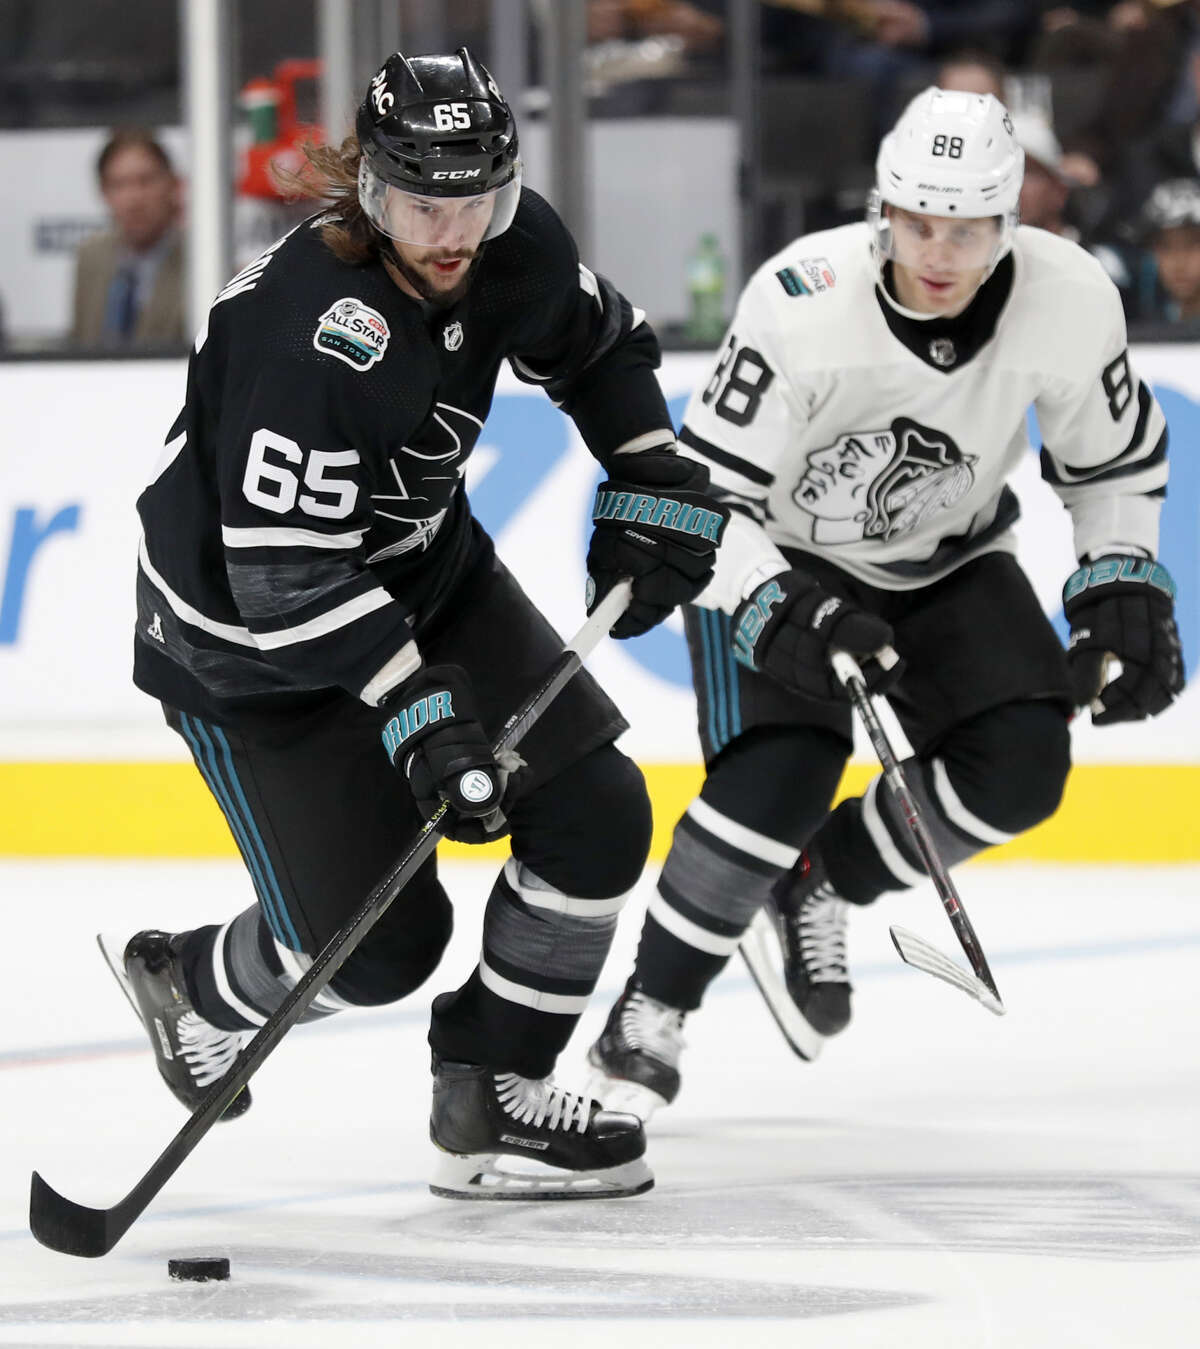 Pacific's Erik Karlsson heads up ice against Central's Patrick Kane during Central's 10-4 win in 2019 NHL All Star Game semifinal at SAP Center in San Jose, Calif., on Saturday, January 26, 2019.